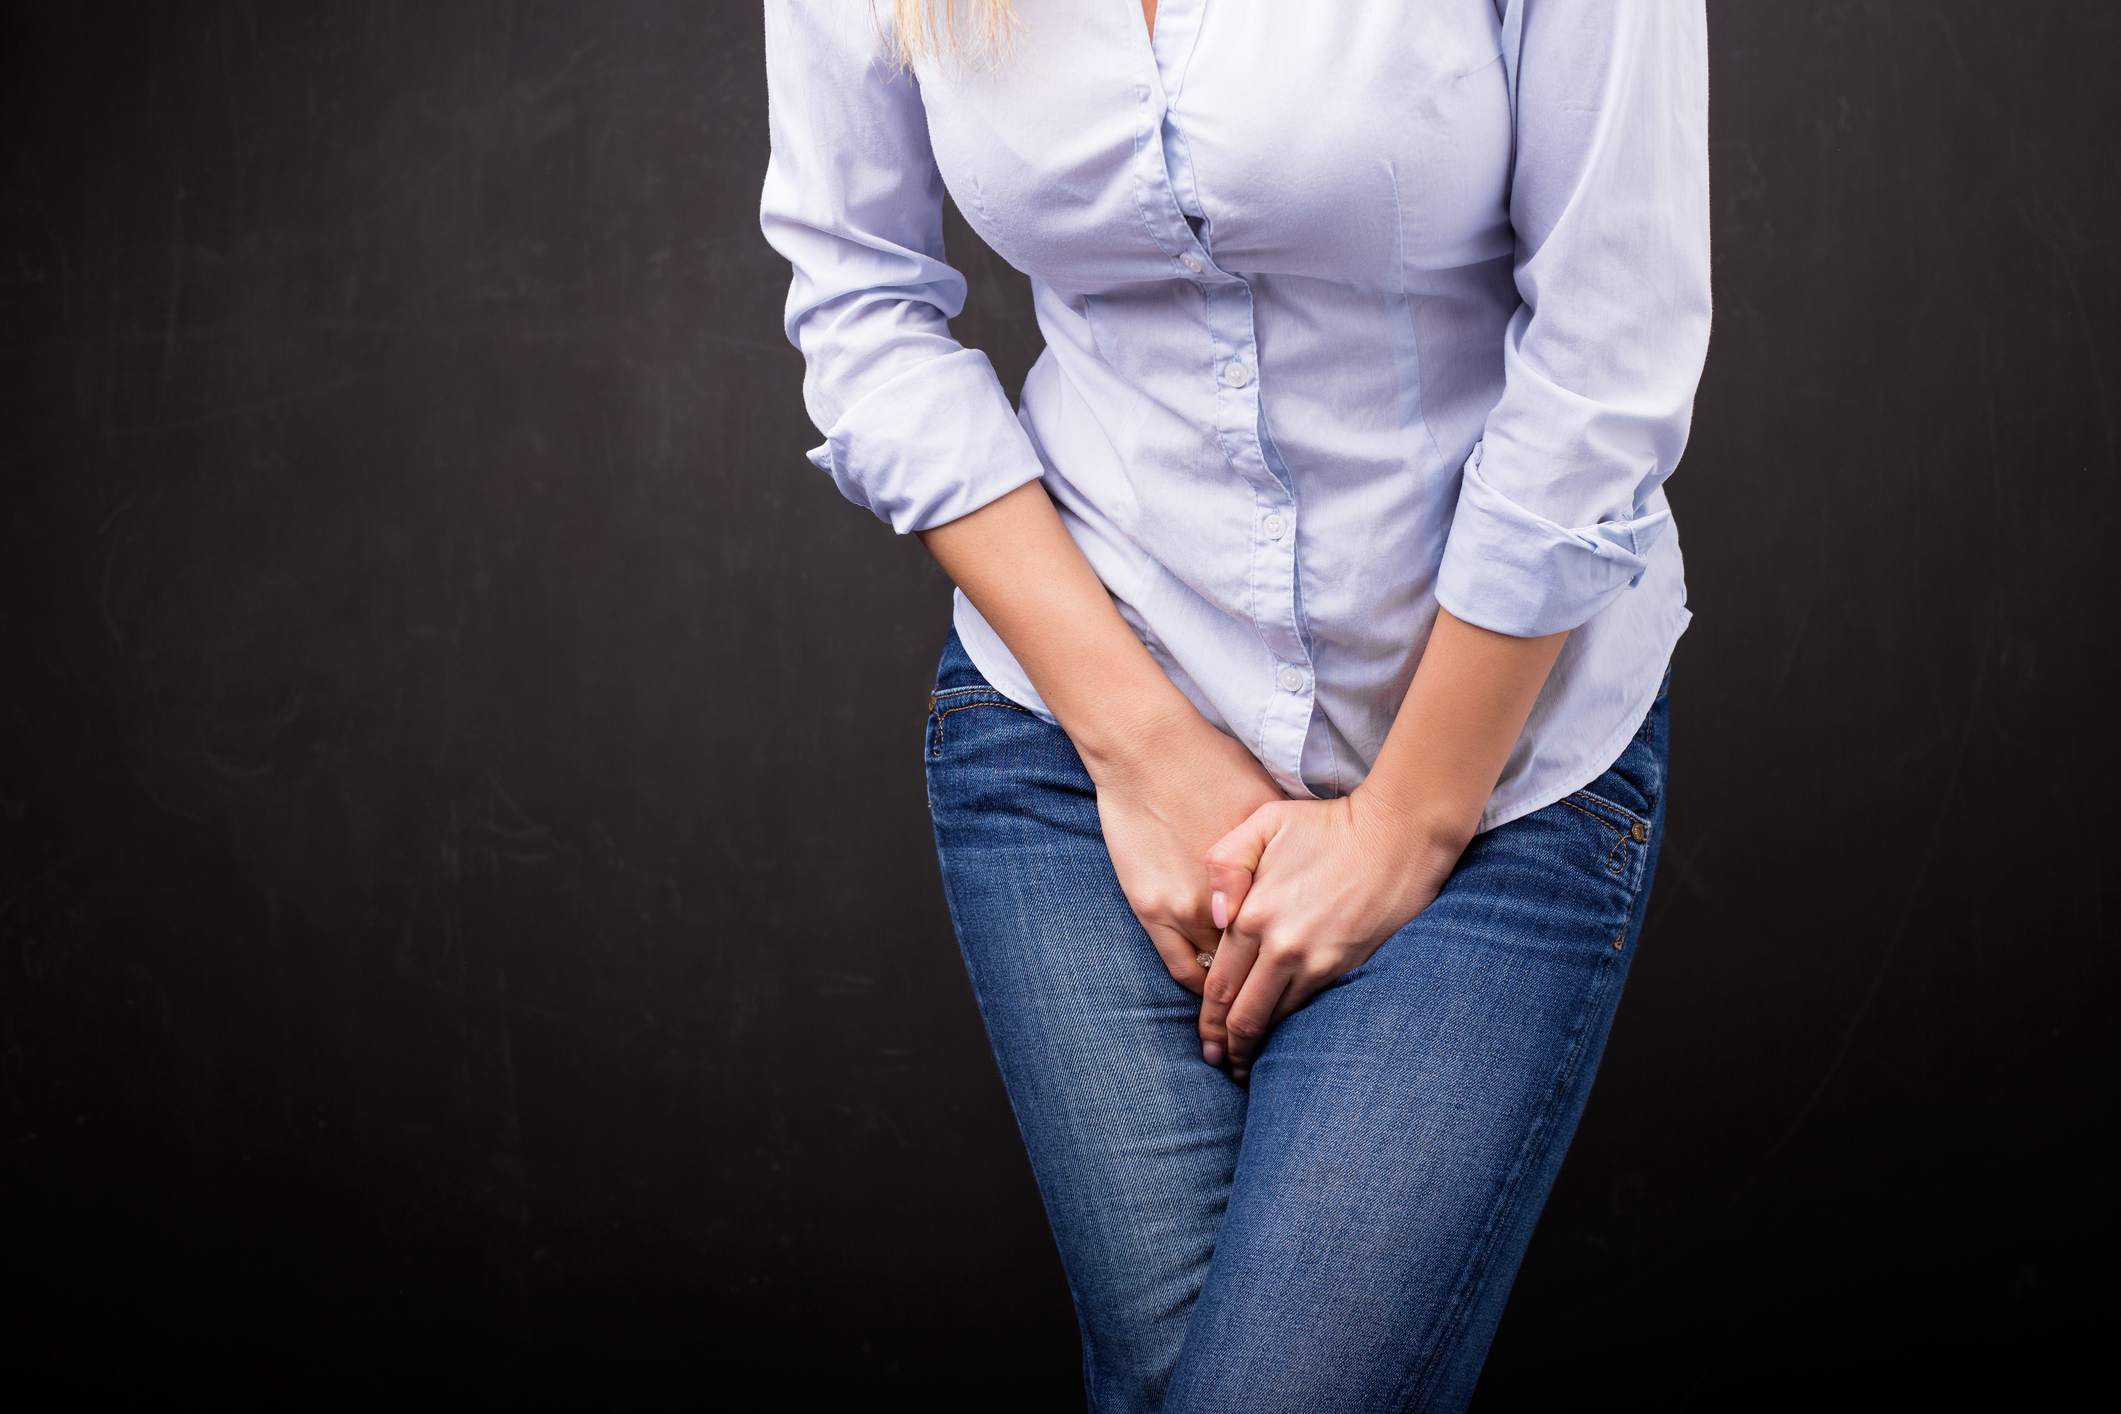 urinary incontinence treatment for women-emsella